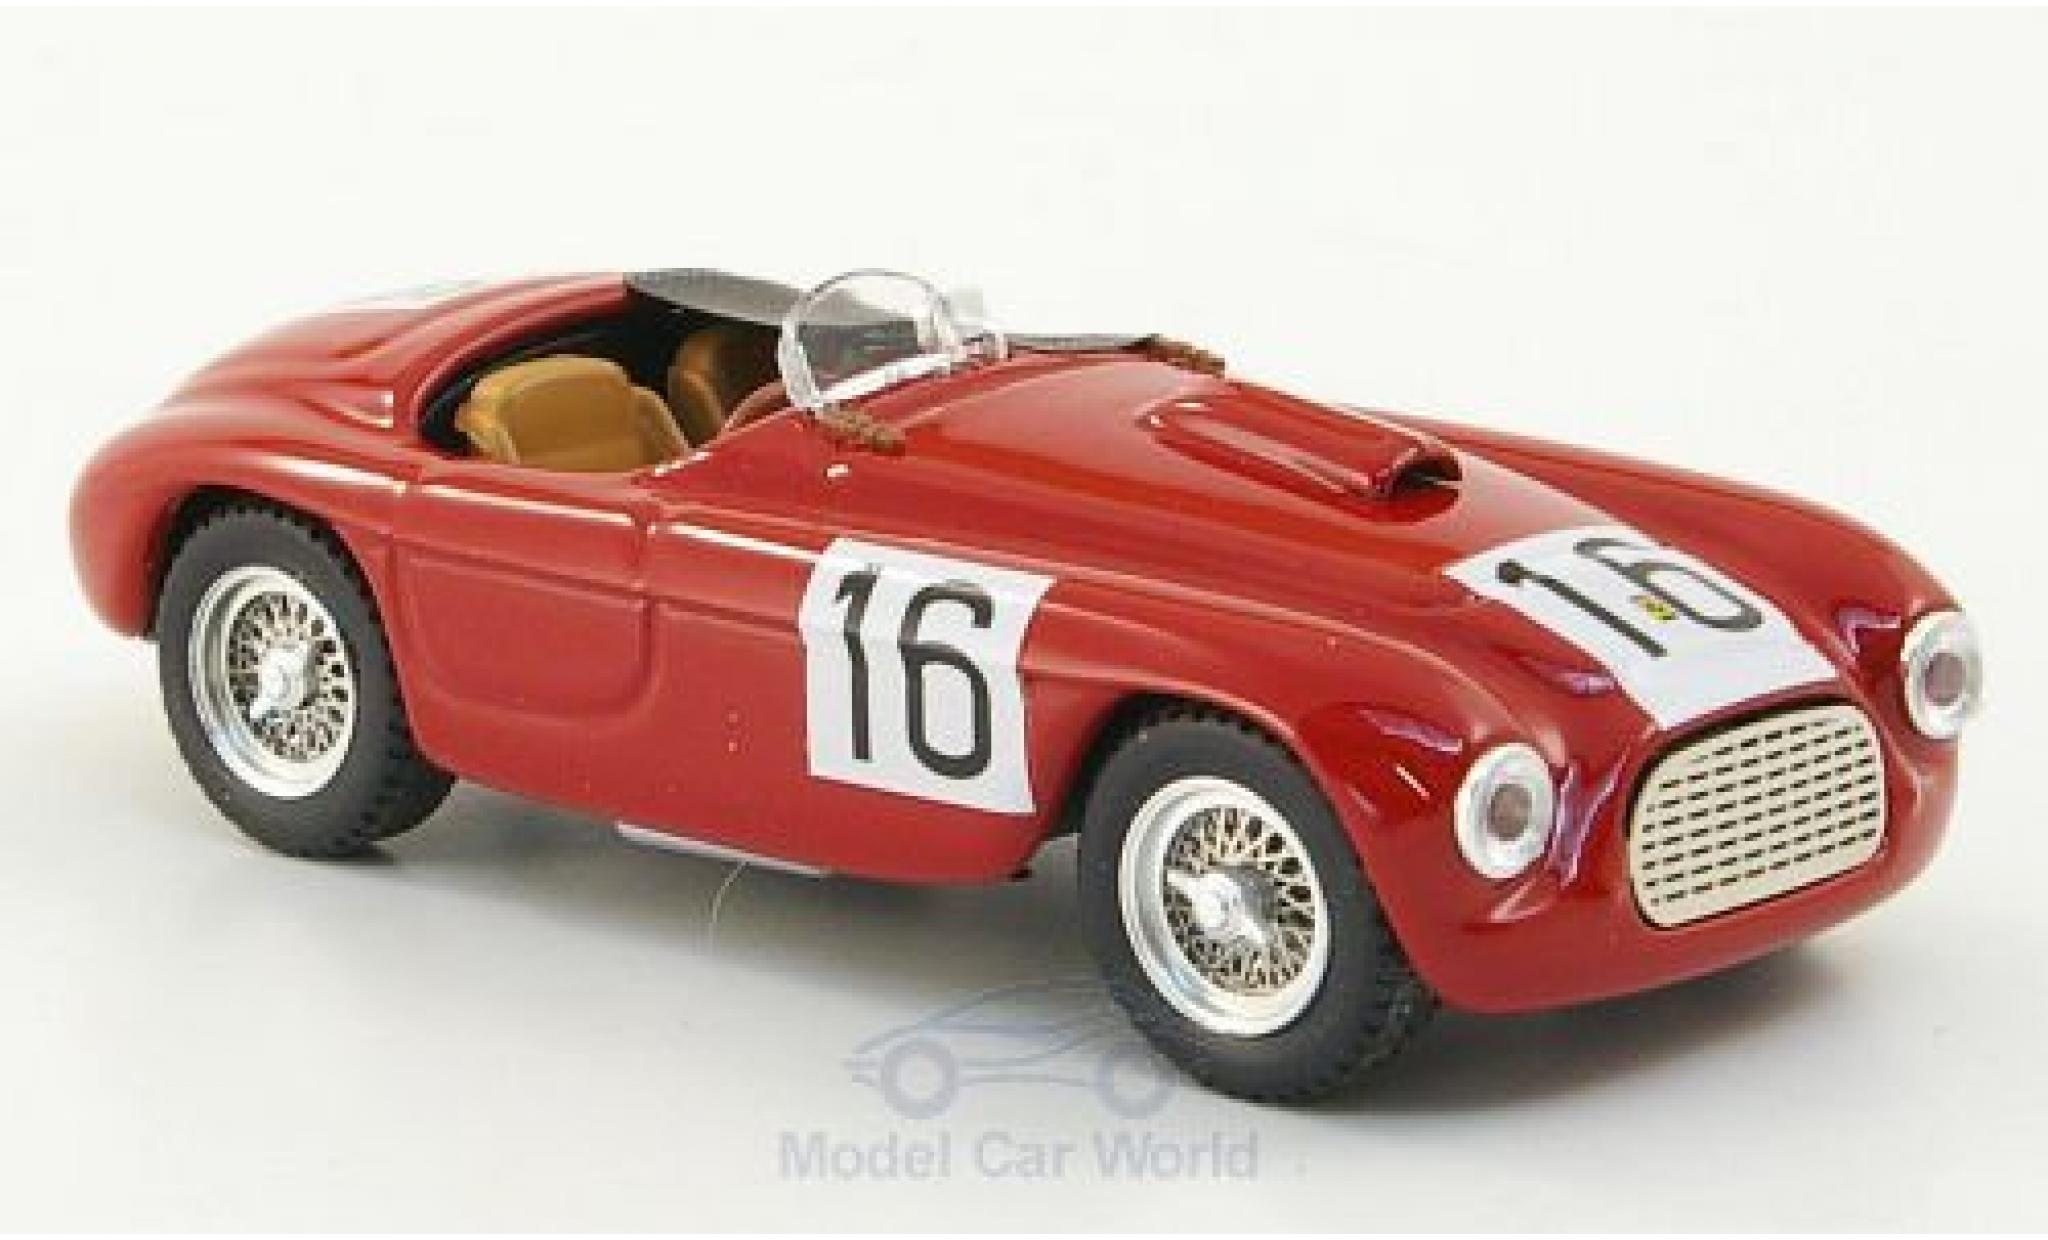 Ferrari 166 1950 1/43 Art Model Spyder RHD No.16 Paris 1950 L.Chinetti